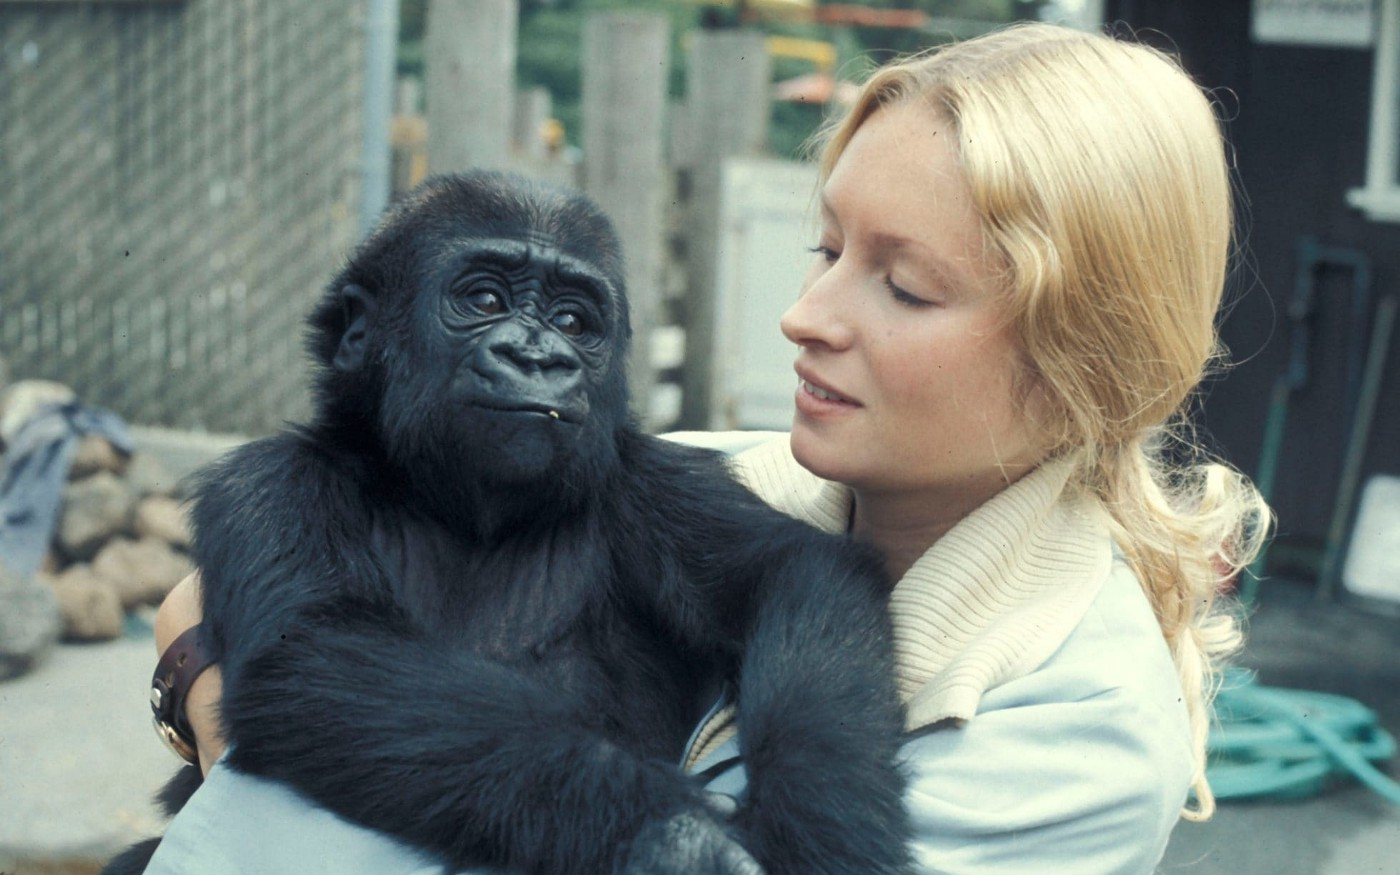 Penny, the American psychologist, holds Koko the Gorilla in her arms.